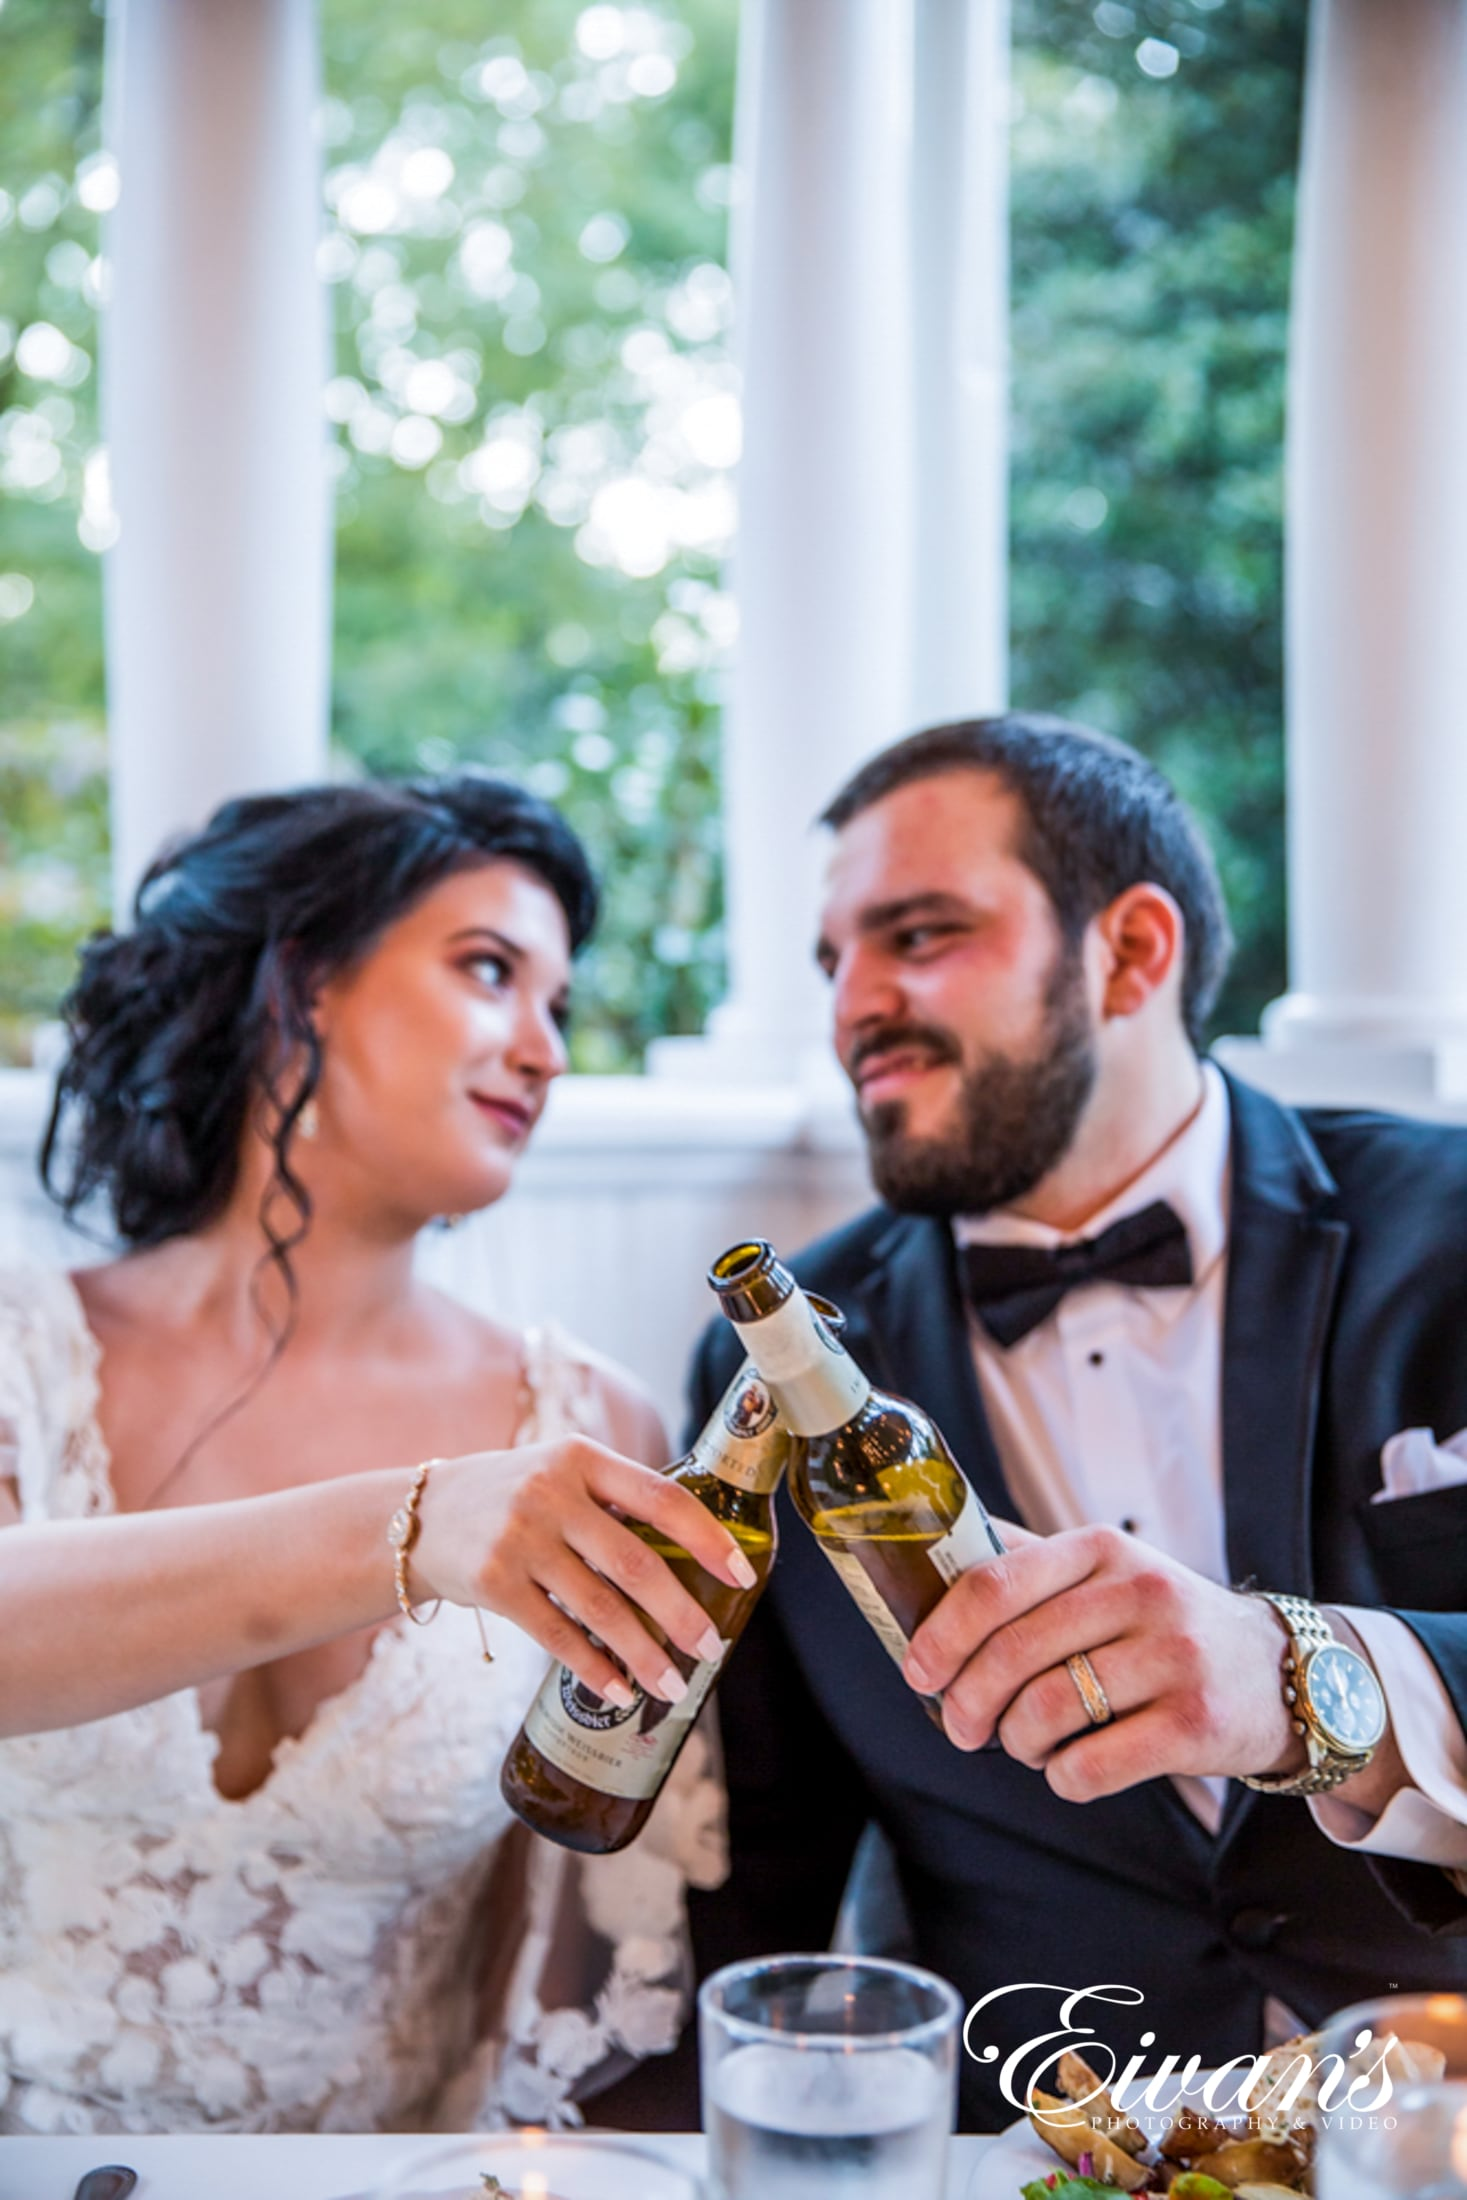 image of a bride and groom cheering a beer